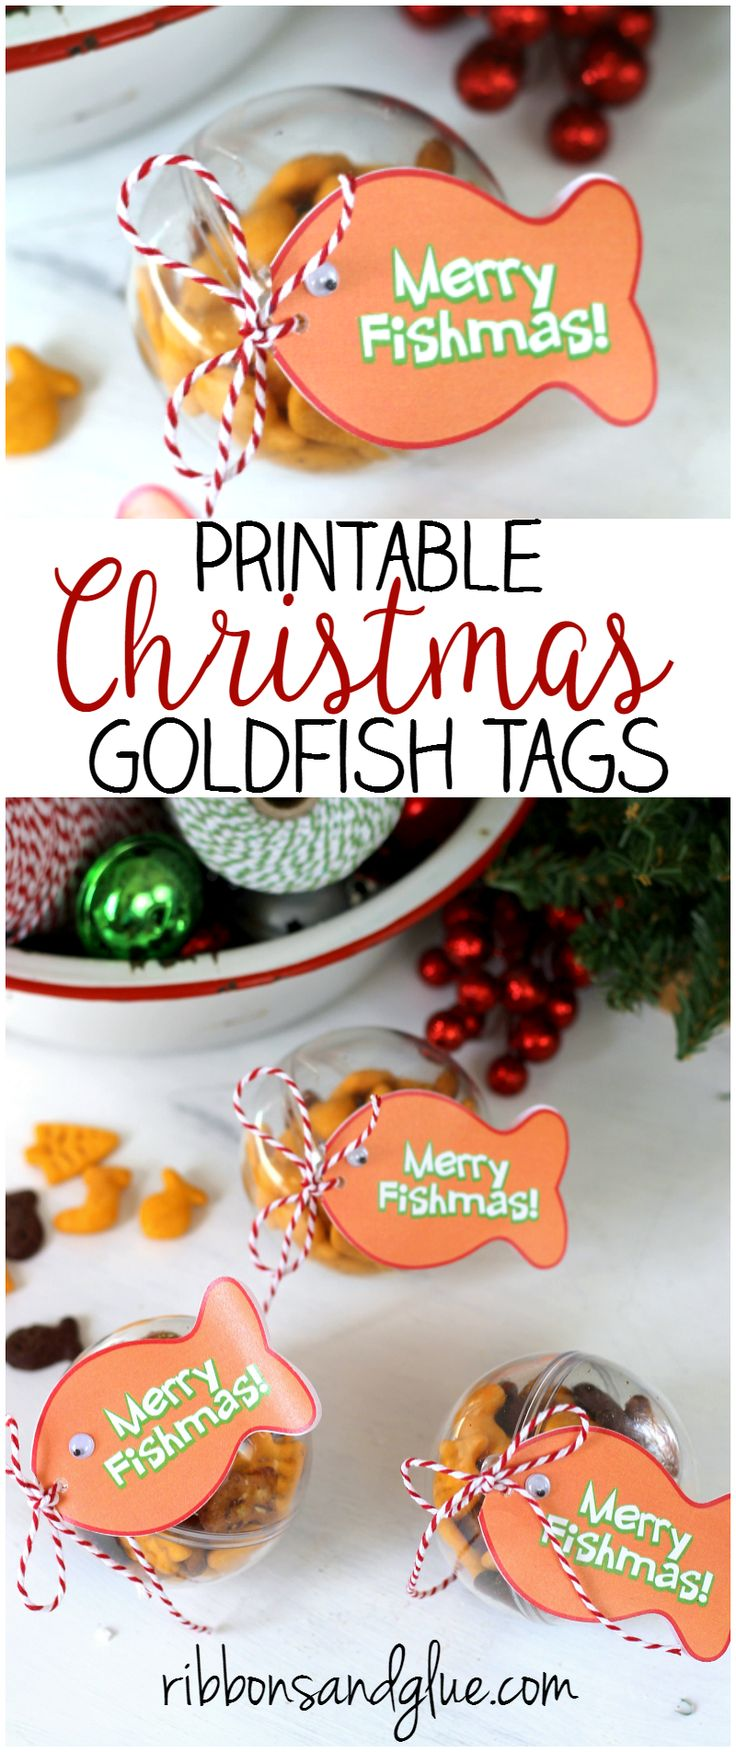 Goldfish Christmas Ornament Tag Printable. Fill up plastic ornaments with Goldfish crackers and attach tag. Easy Christmas Kids Craft Idea. #SpreadCheer #ad @target